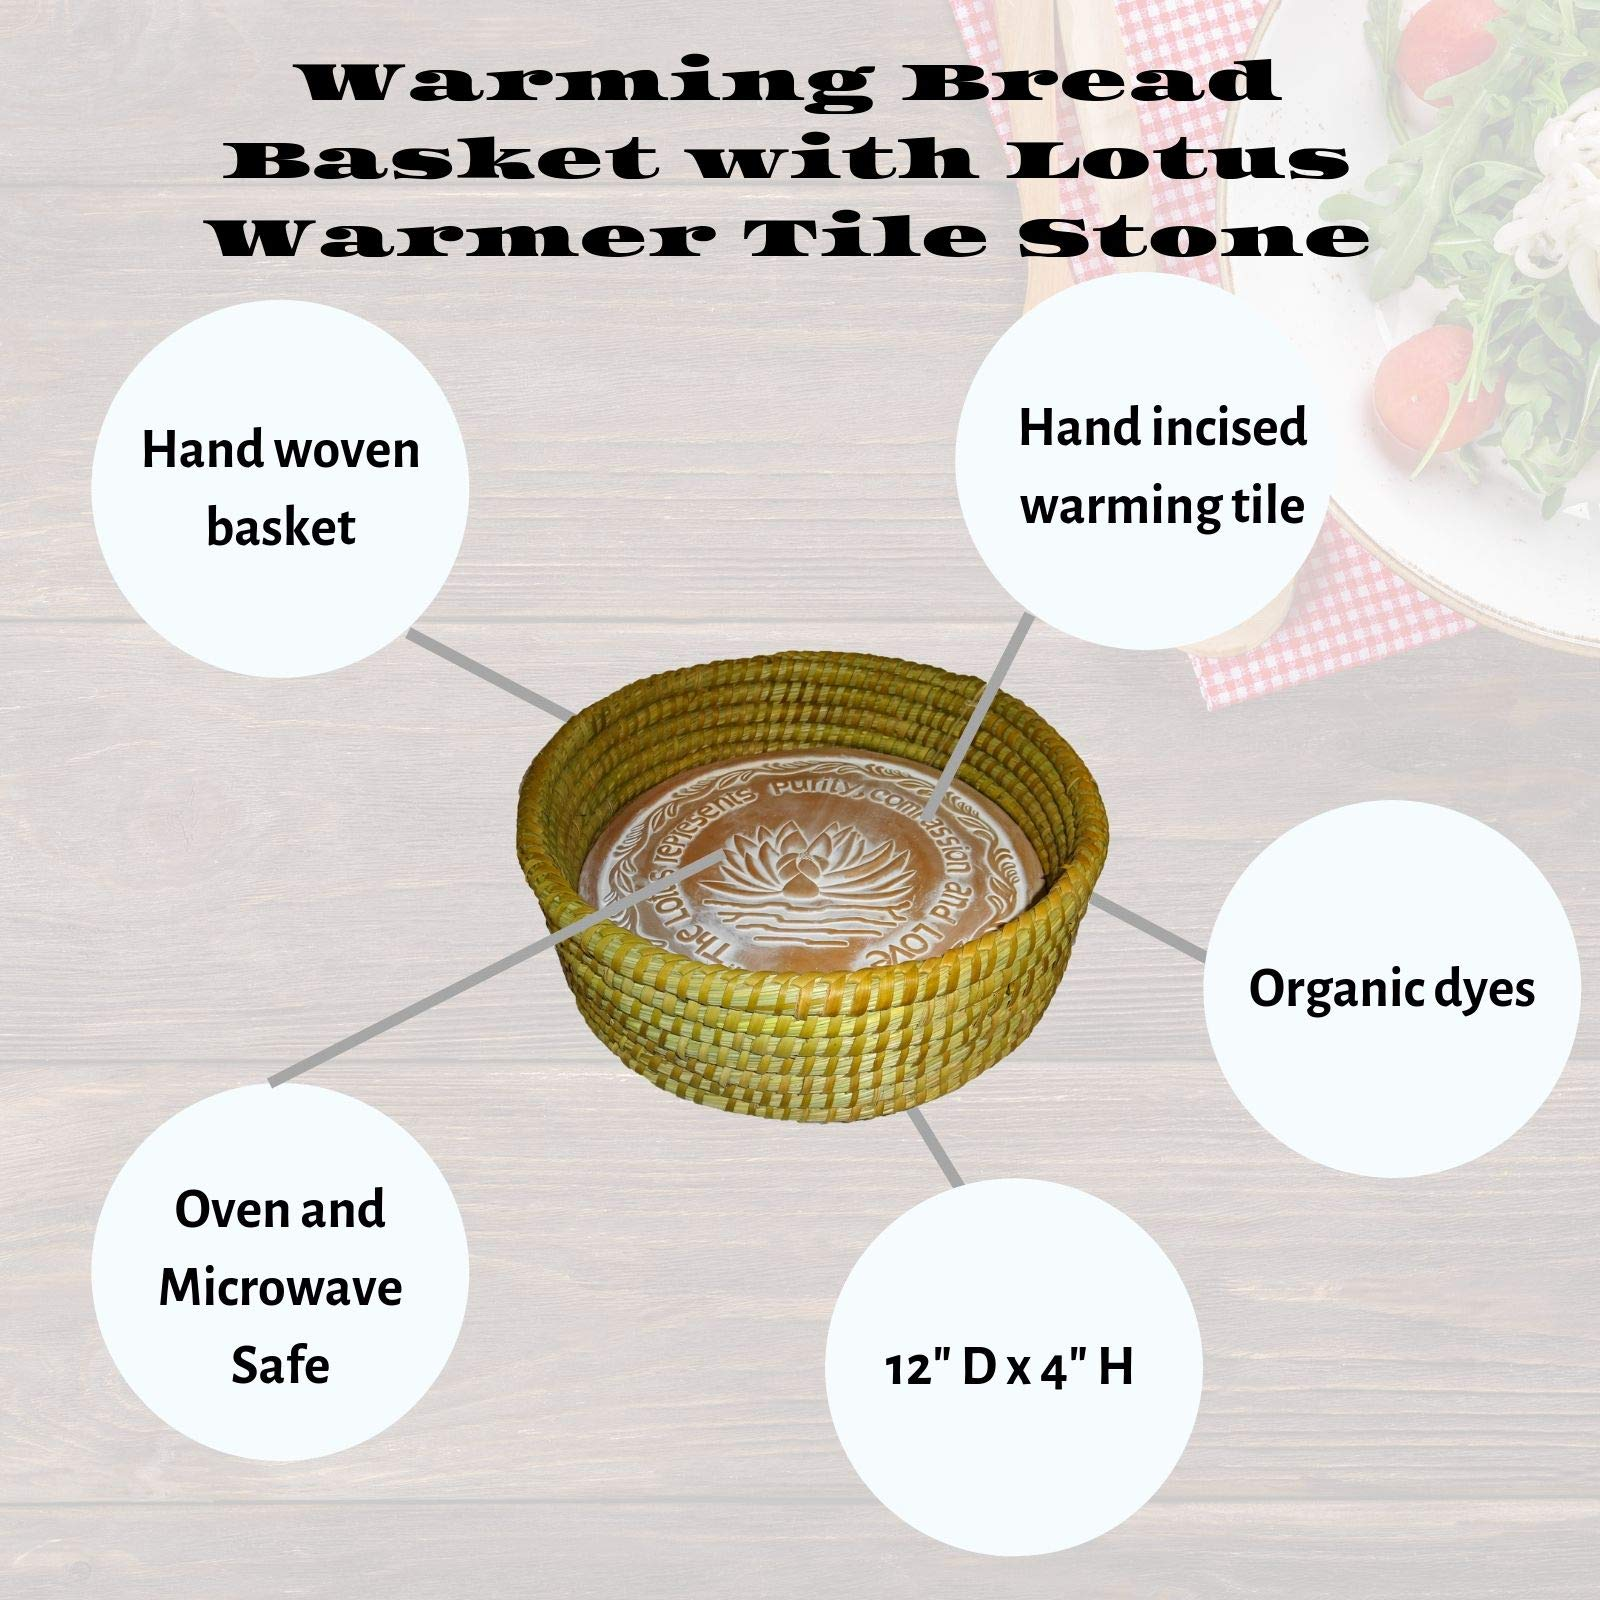 The Crabby Nook Warming Bread Basket with Lotus Warmer Tile Stone Hand Woven For Rolls Appetizers (12 Inch Natural) by The Crabby Nook (Image #4)